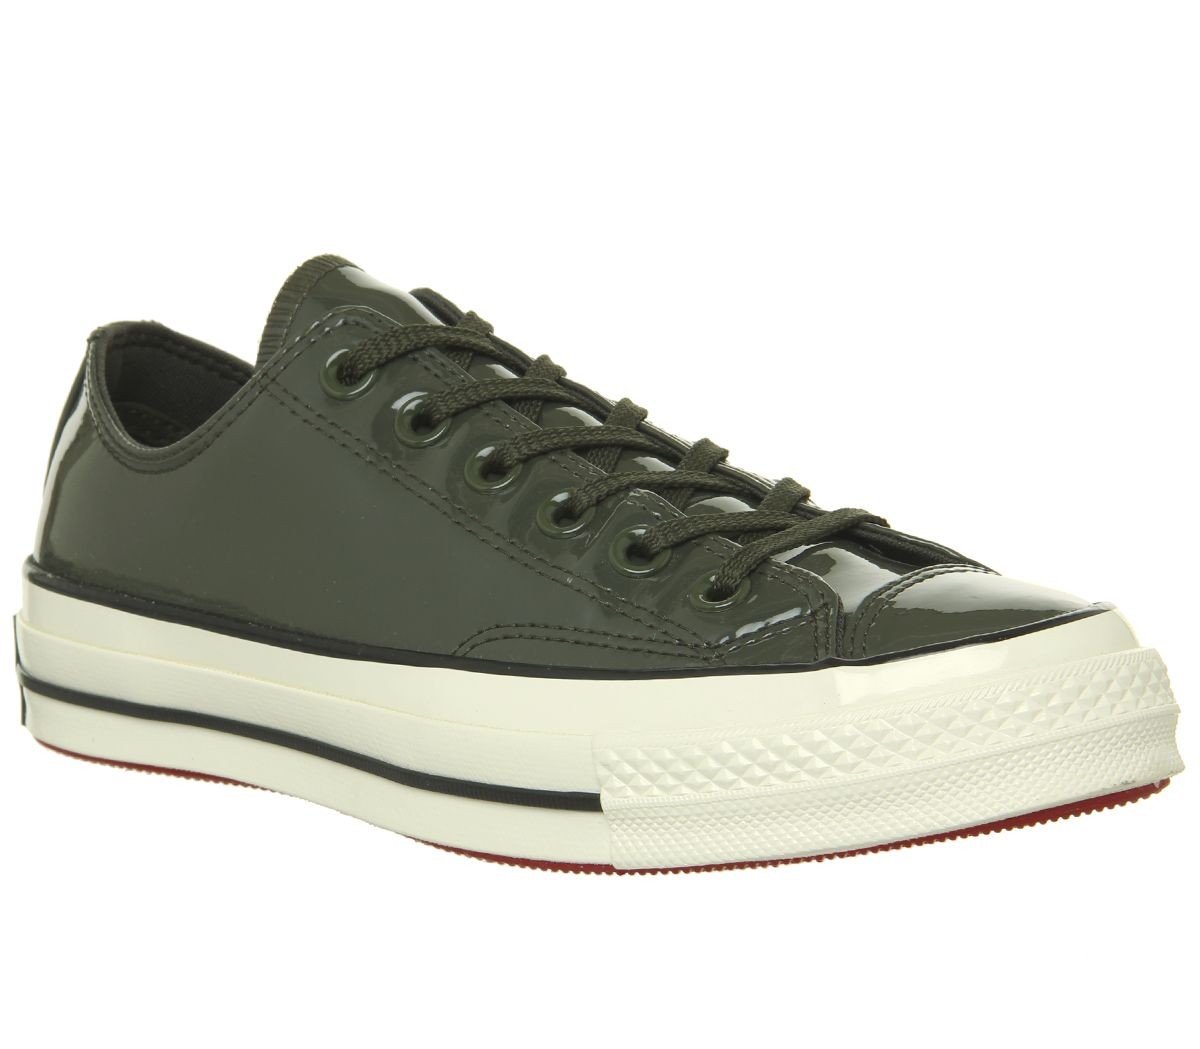 8b98a6059ad0 Converse All Star Ox 70 s Trainers Utlity Green Black Egret Patent ...